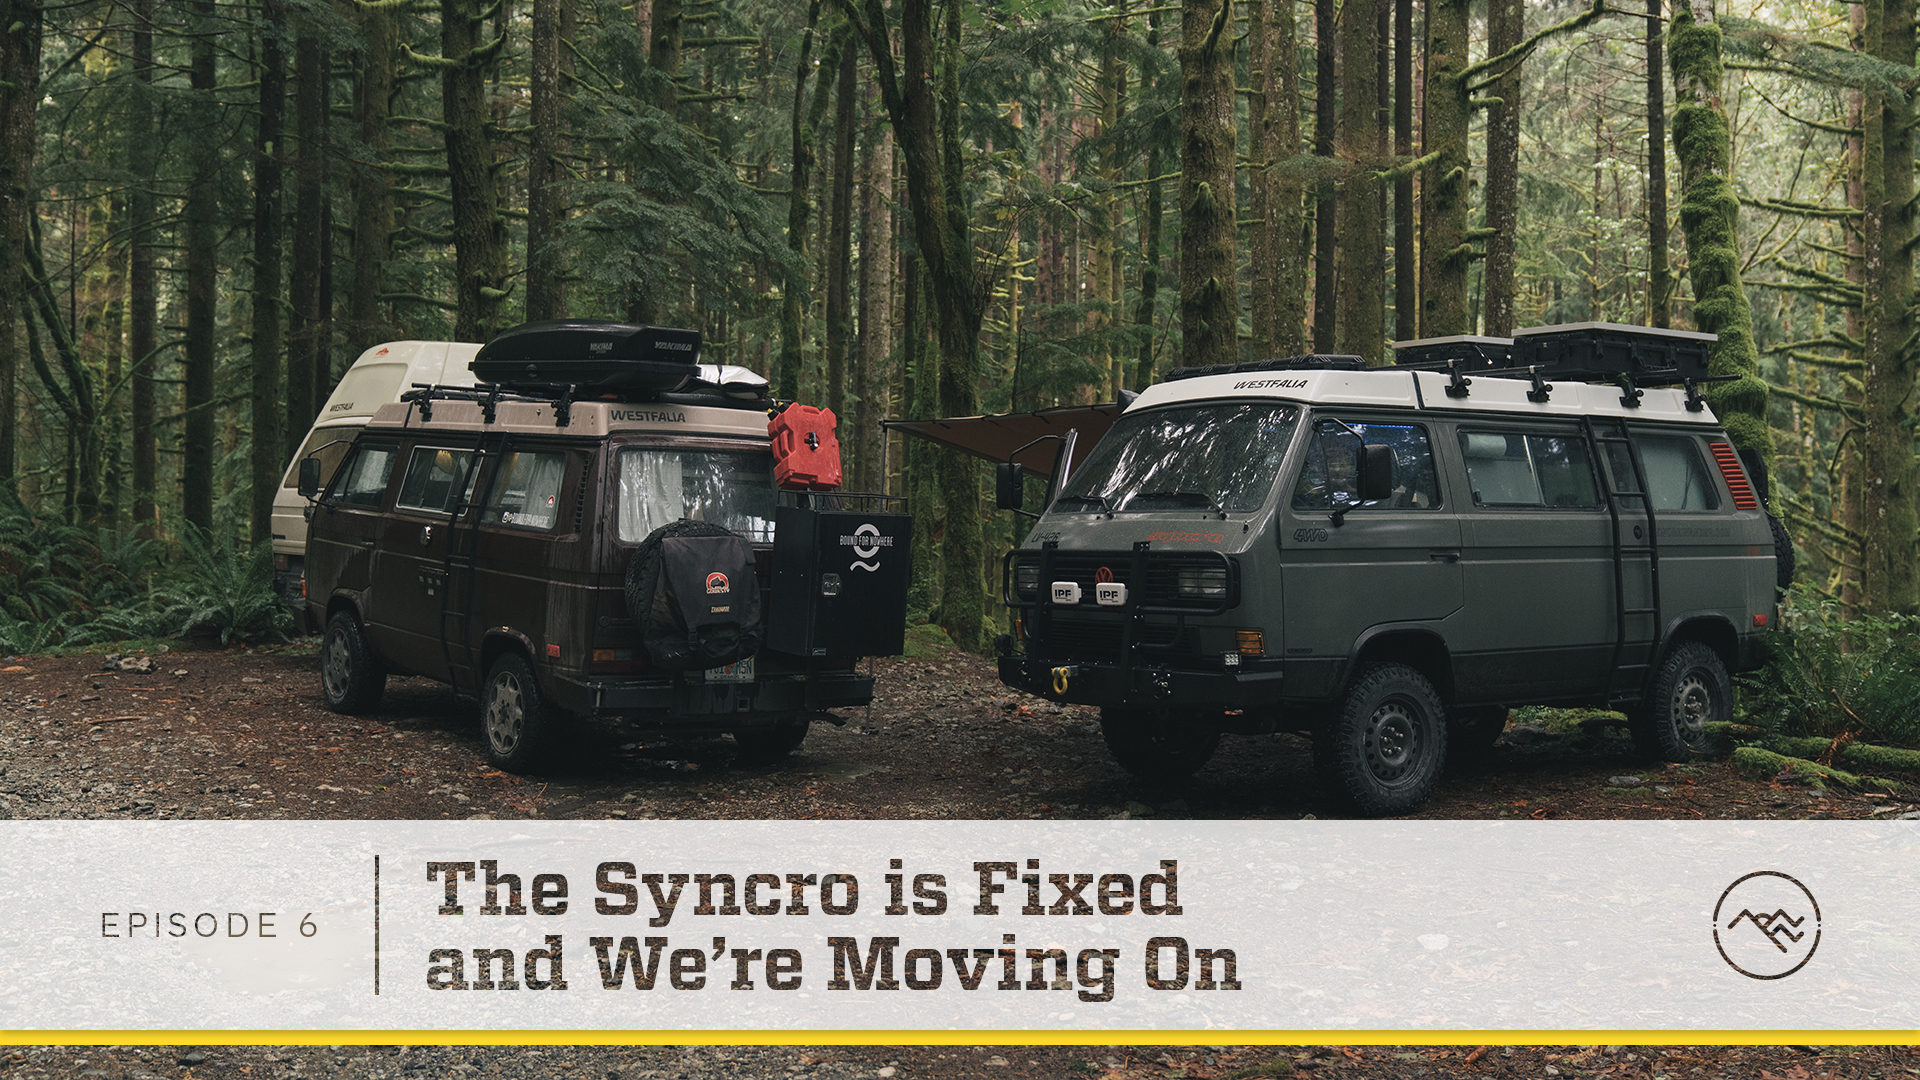 E06 : The Syncro is Fixed and We're Moving On